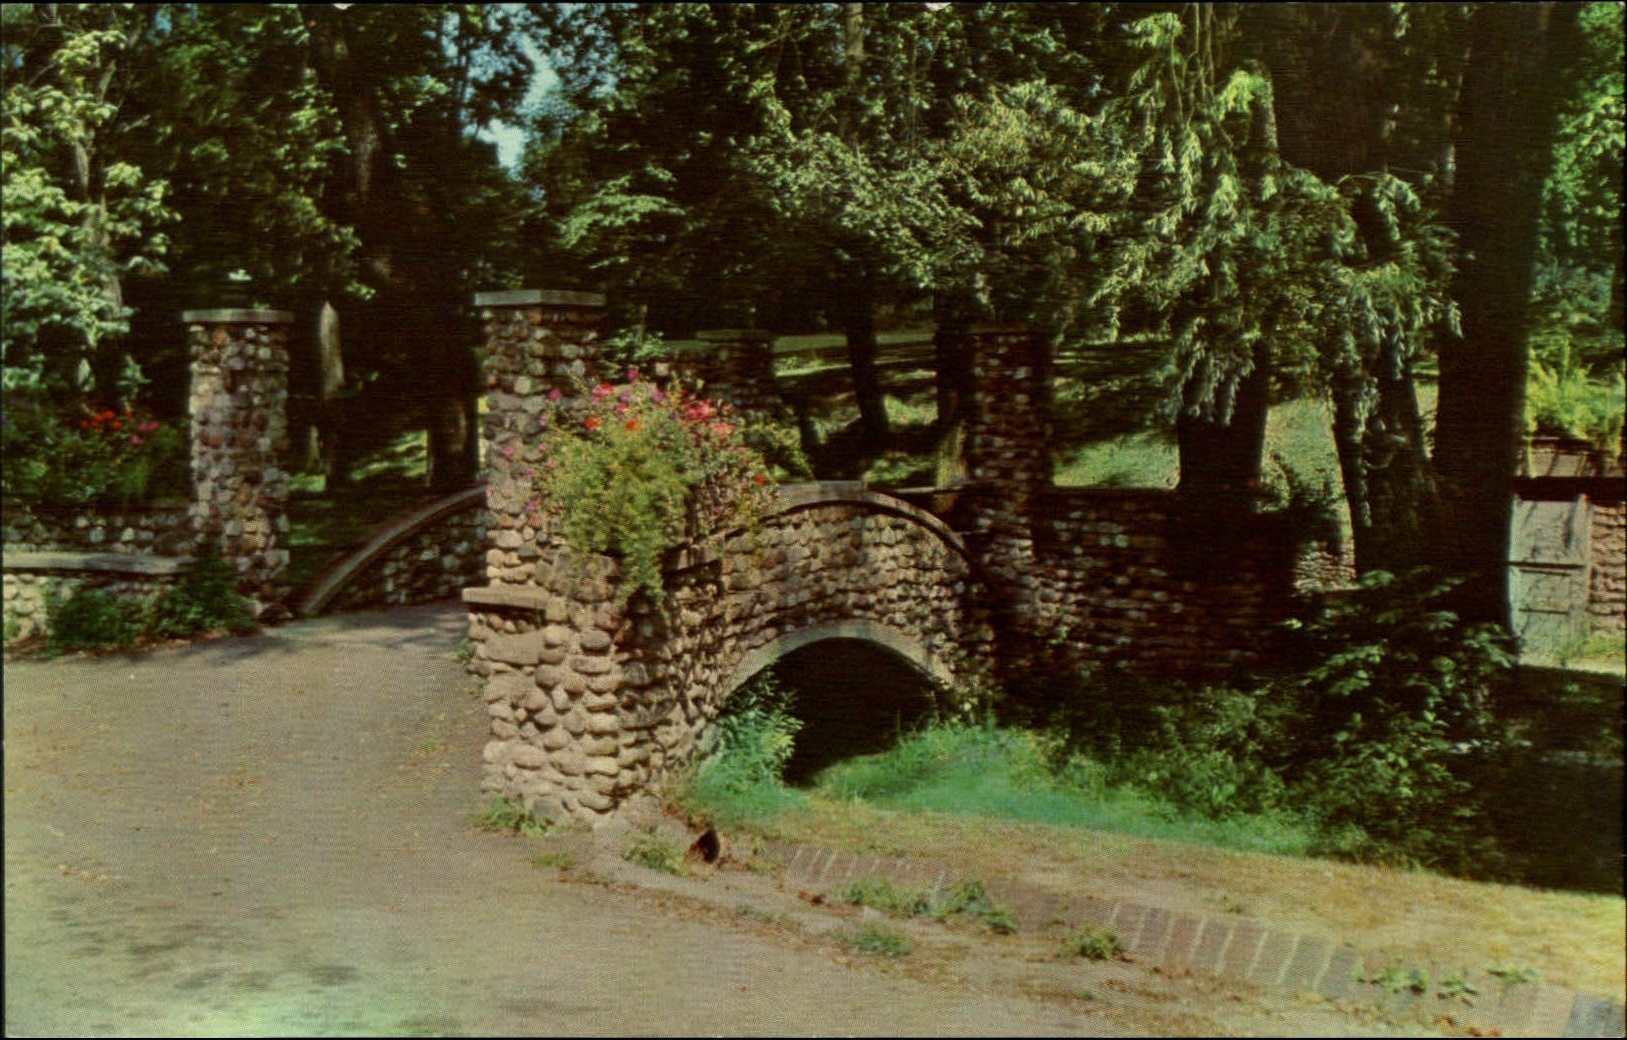 Rustic stone arch bridge ~ Glen Miller Park Richmond Indiana ~ 1960s postcard